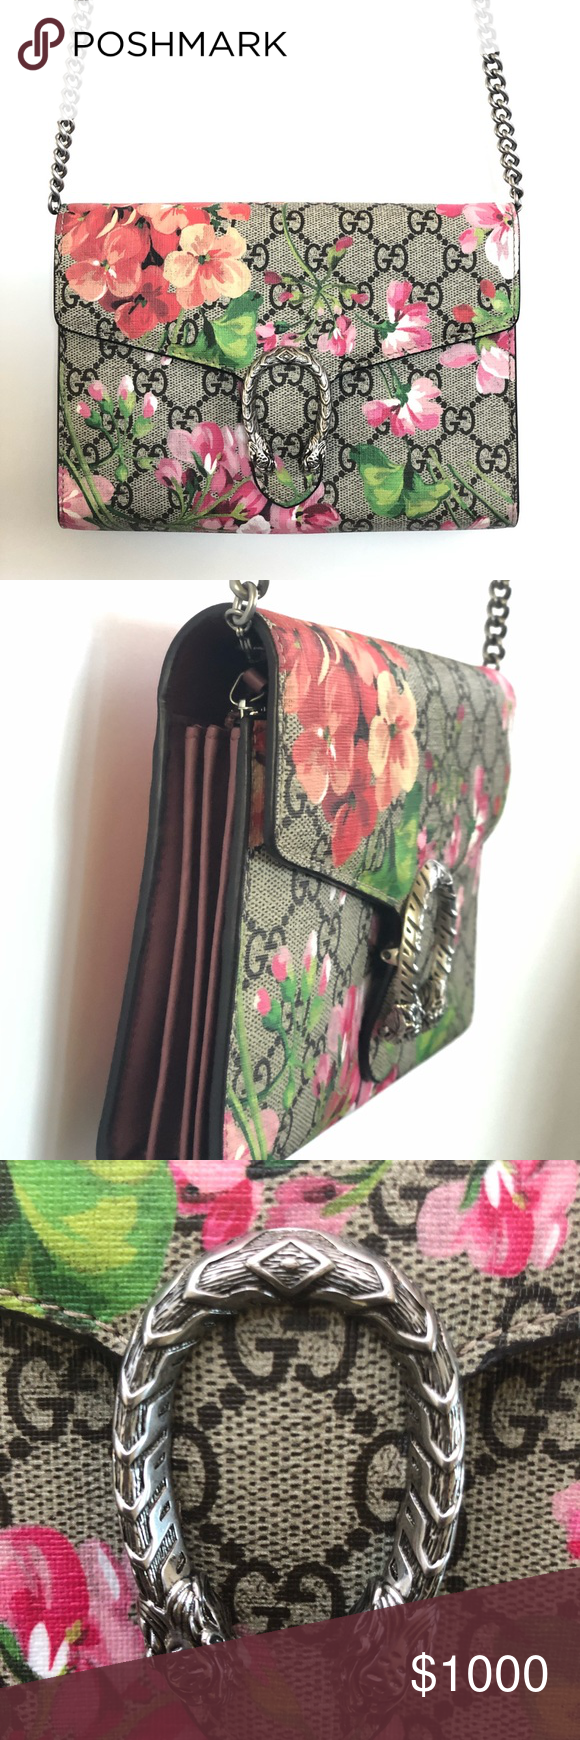 9ea0f88a975 Gucci Dionysus blooms print mini chain bag Great condition like new an  authentic GUCCI GG Supreme